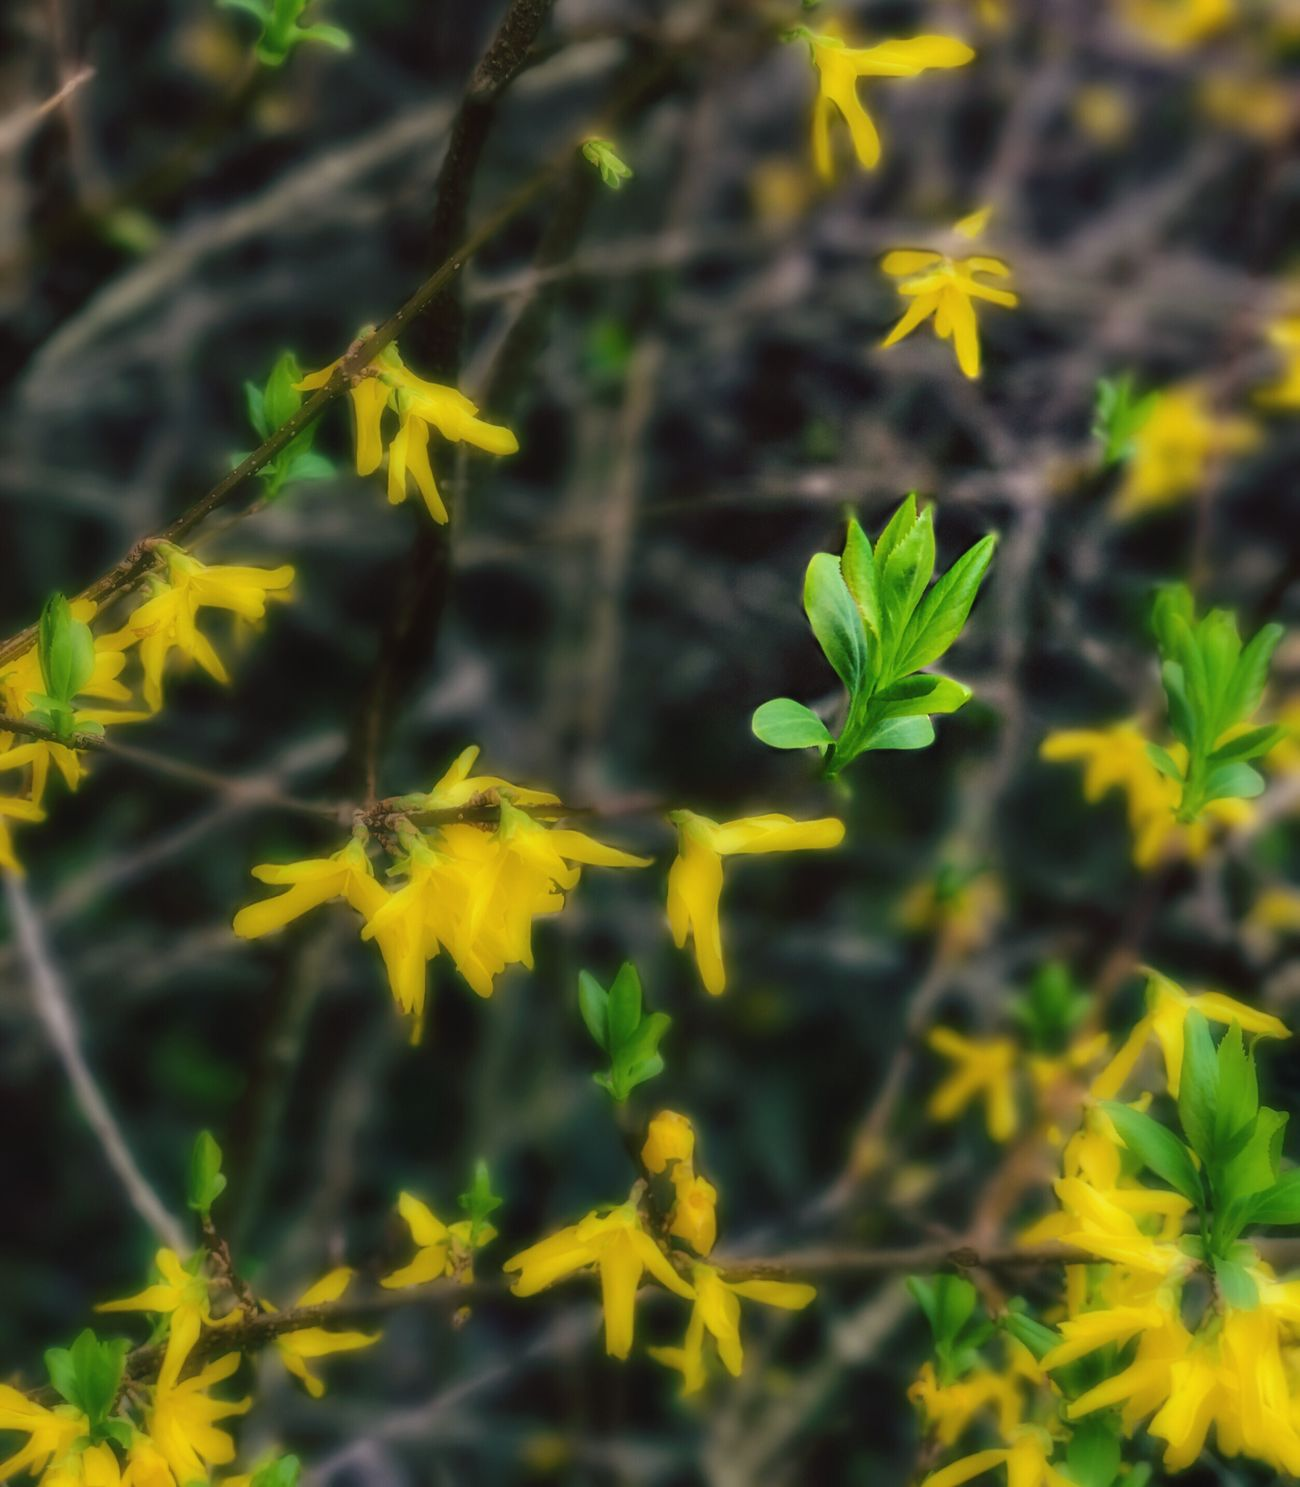 Yellow Growth Nature Plant Beauty In Nature Close-up Flower No People Outdoors Fragility Insect Freshness Flower Head Leaves🌿 Leave Collection Dreaming EyeEm Nature Lover Abstract Flower Abstract Nature Perpective EyEmNewHere Eyem Best Shots The Week Of Eyeem Fineart Getting Inspired